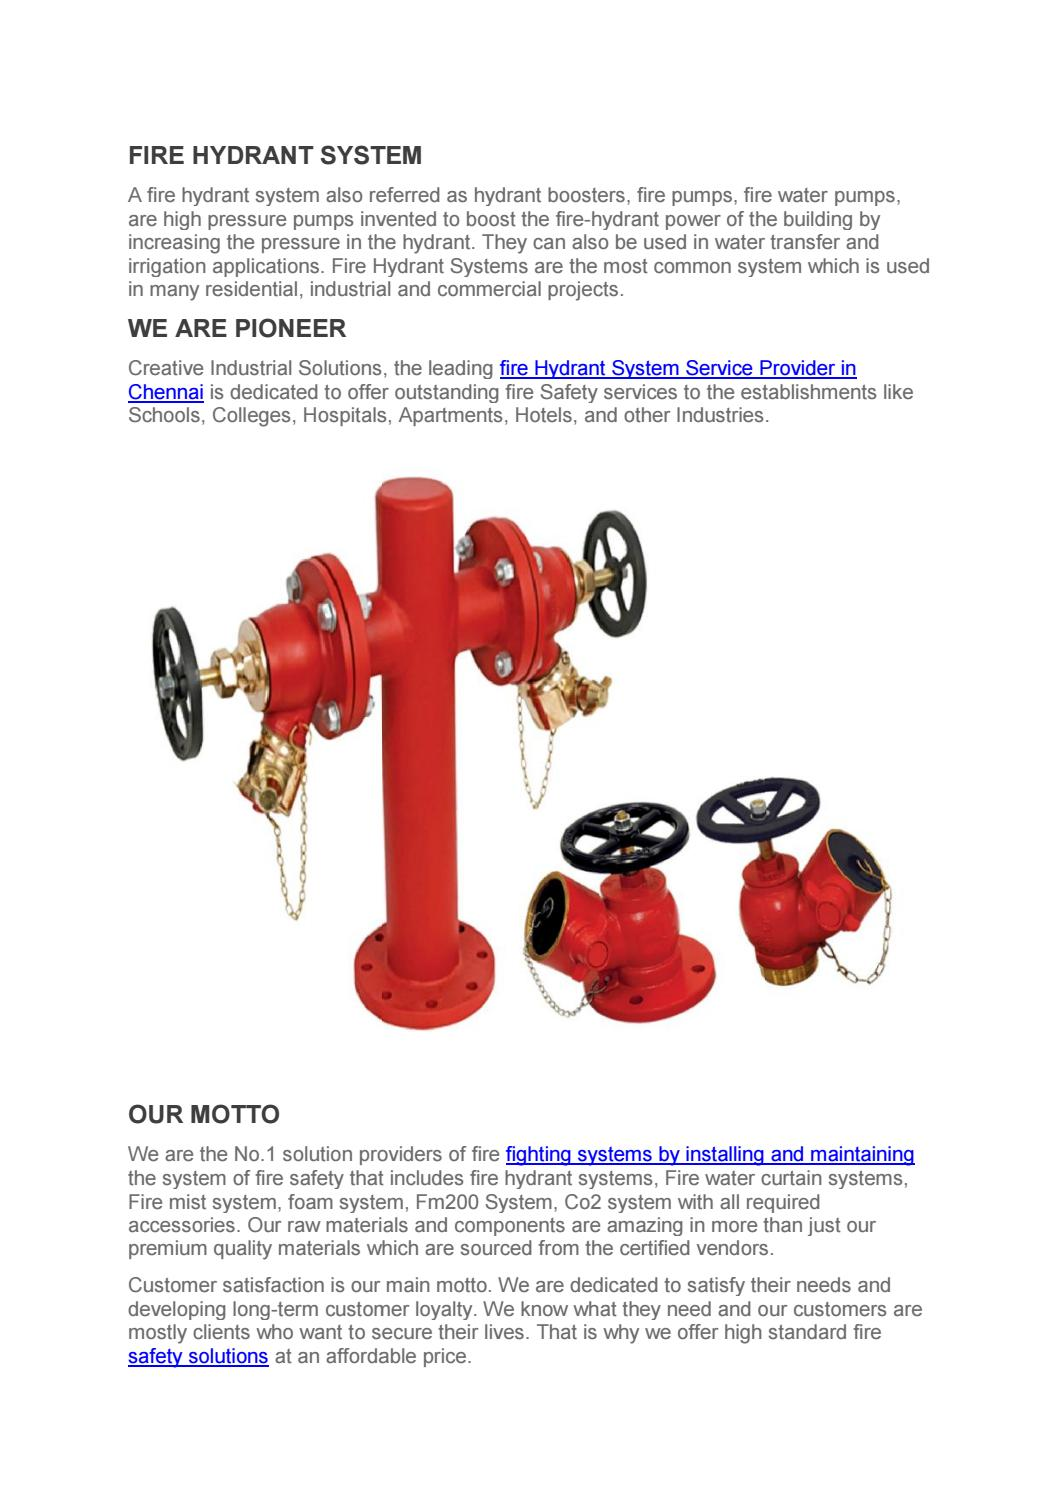 Fire hydrant system installation service by